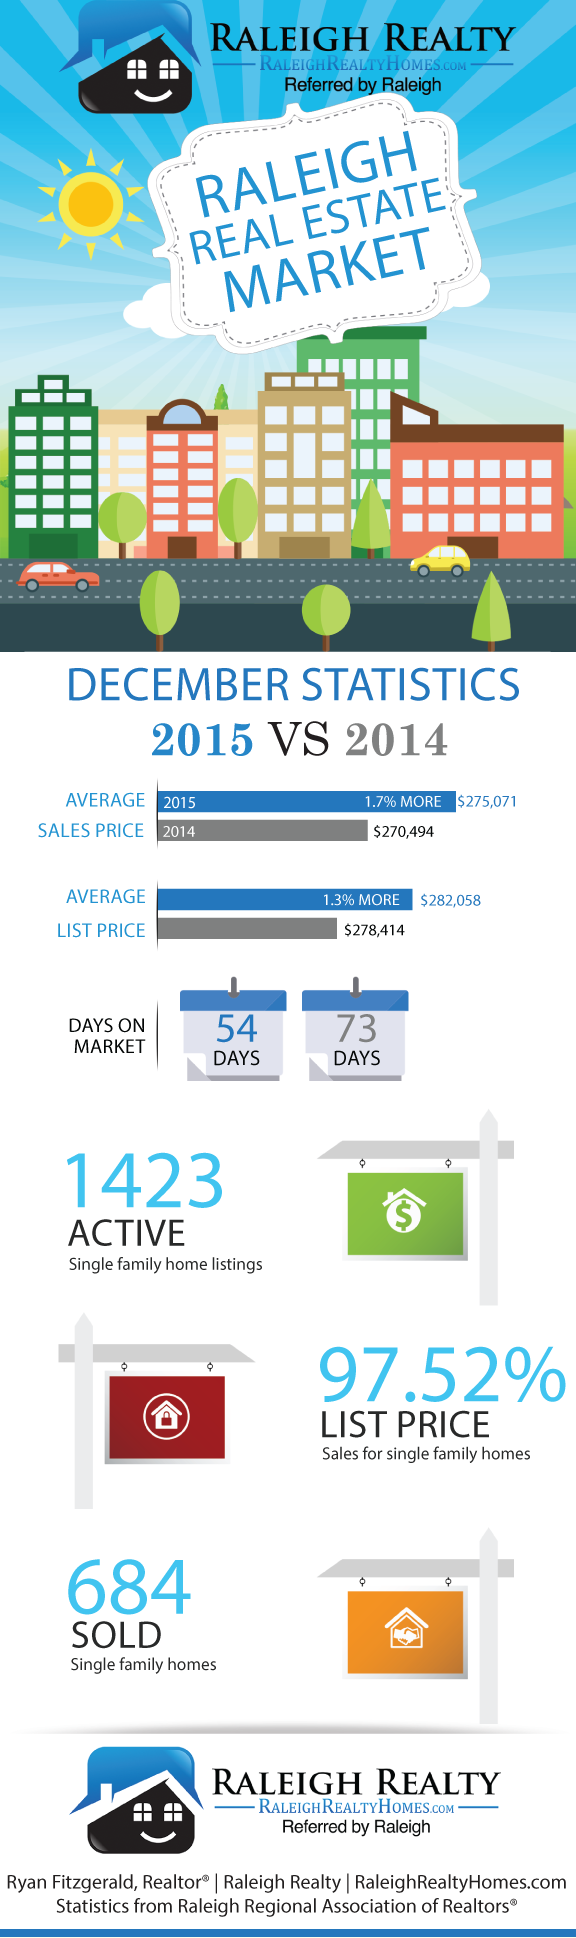 Homes that Sold in Raleigh, NC December 2015